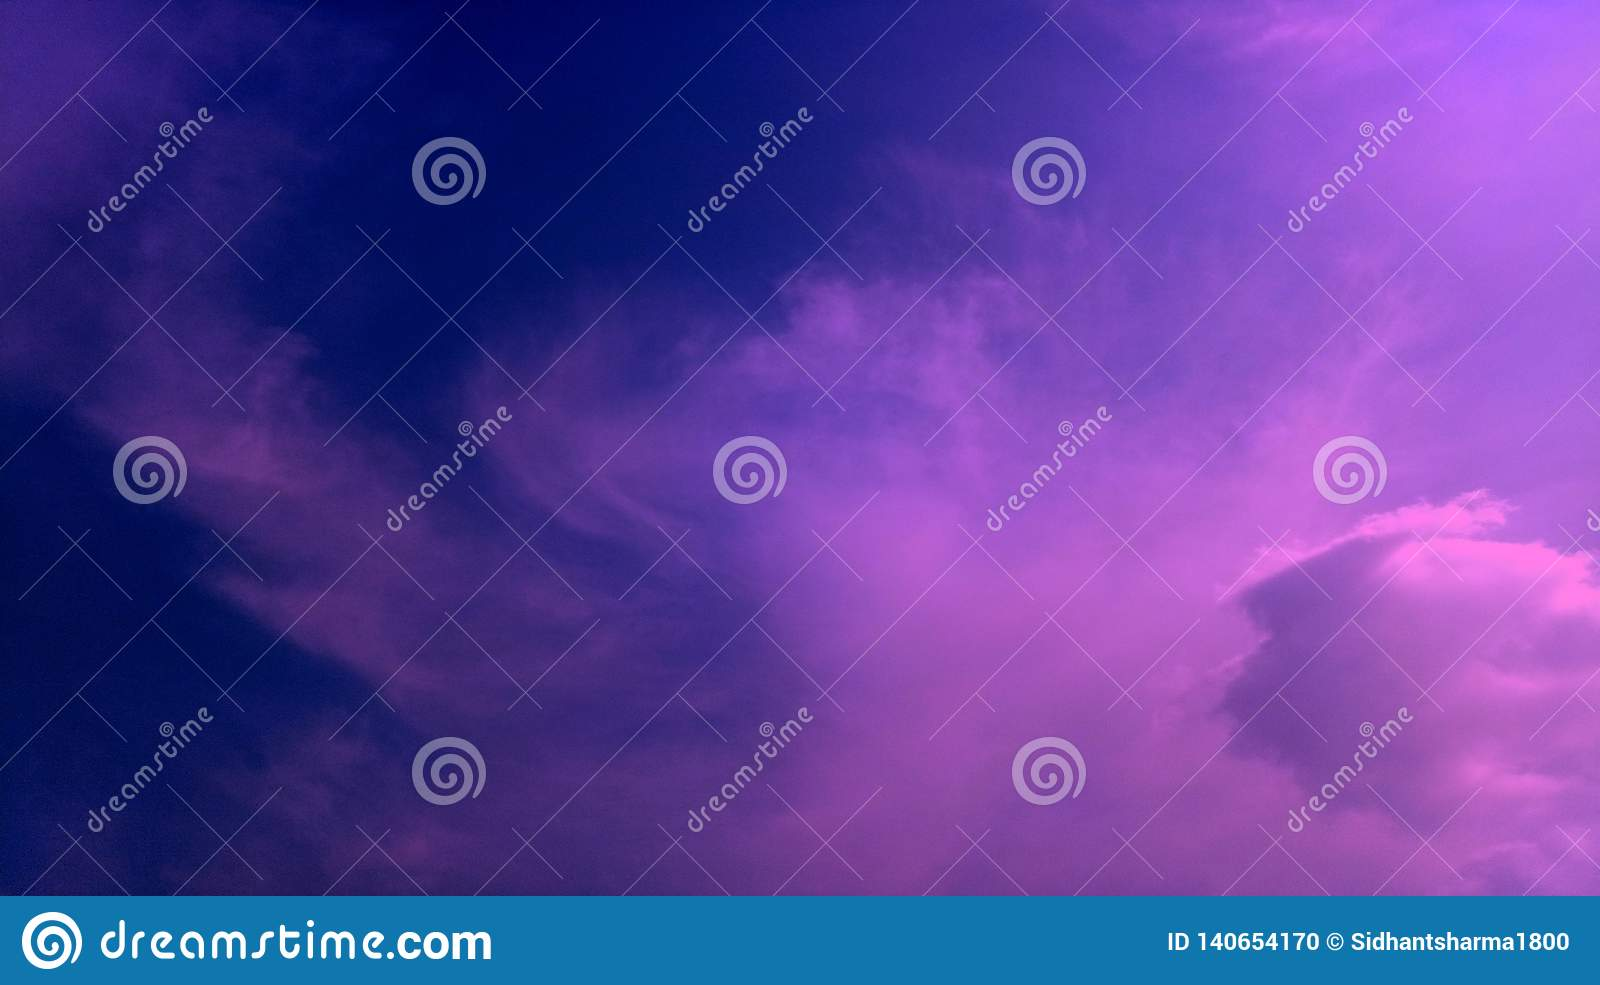 Smoky clouds pink blue color mixture effects texture background wallpaper.